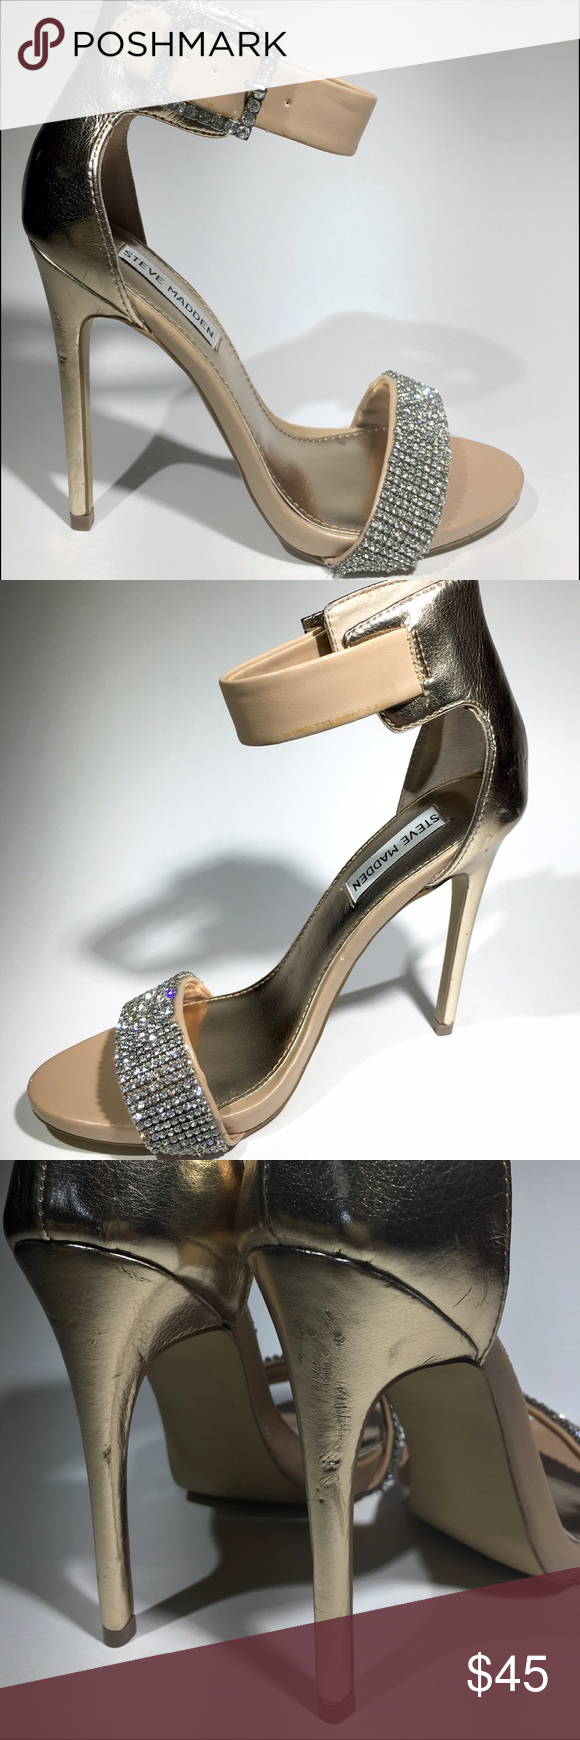 Steve Madden Rhinestone Strappy Open Toe Heels Heels have never been worn, minor scuffs on heels. Pictures show all defects. New, no tags. Steve Madden Shoes Athletic Shoes